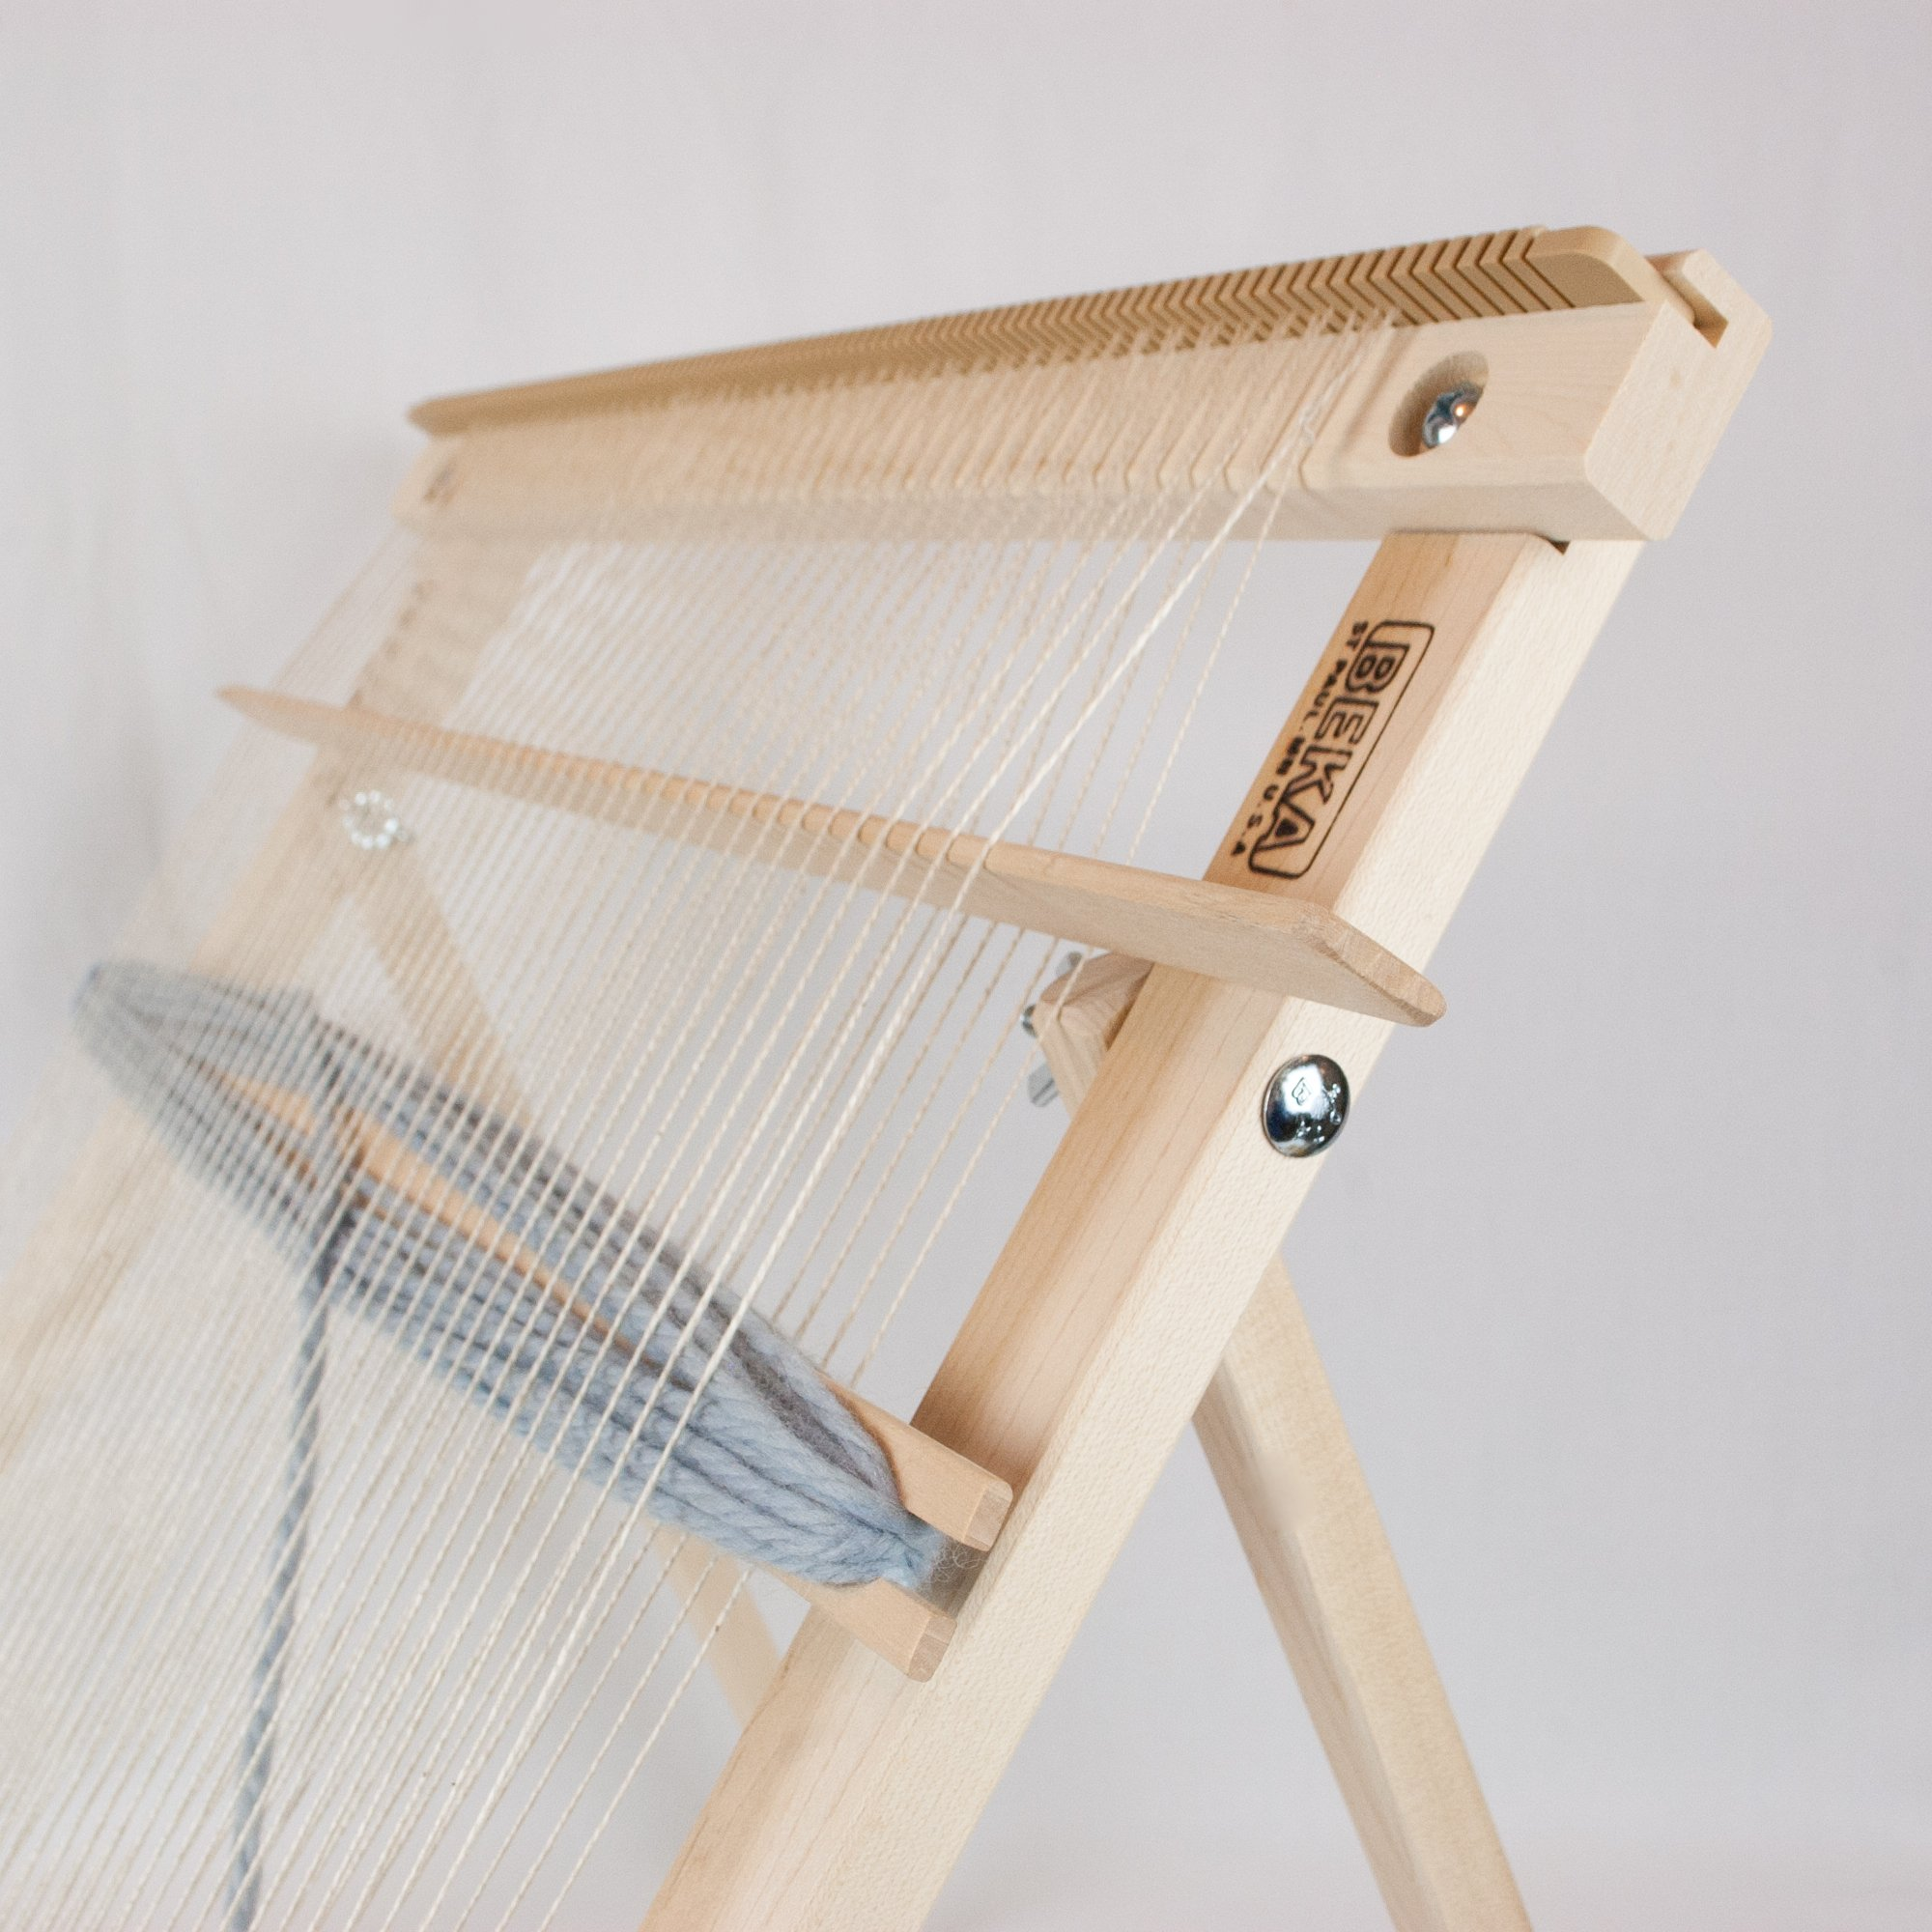 Beka 20'' WEAVING FRAME LOOM WITH STAND - THE DELUXE!